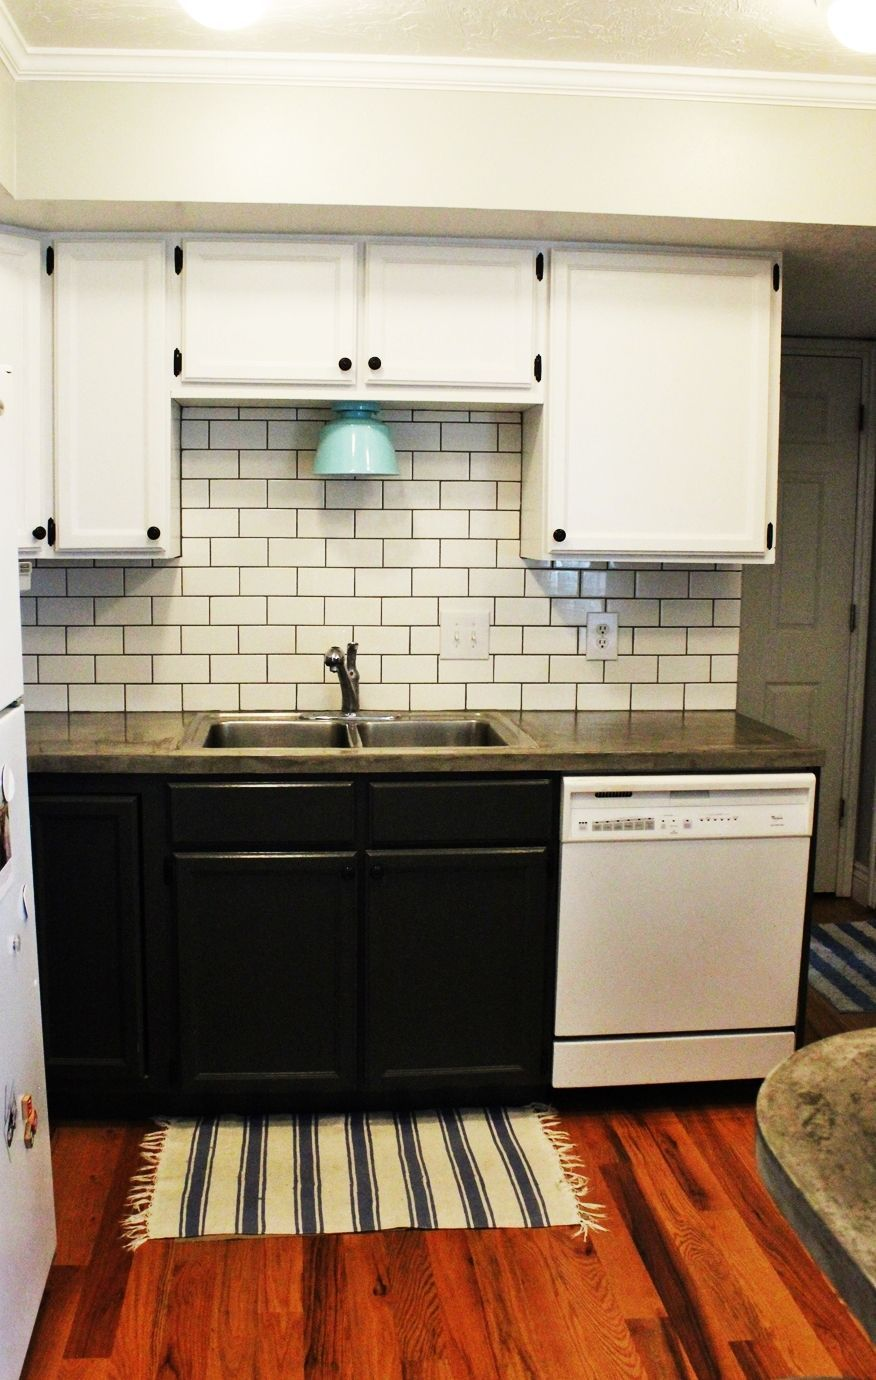 To install a subway tile kitchen backsplash how to install kitchen subway for backsplash dailygadgetfo Choice Image